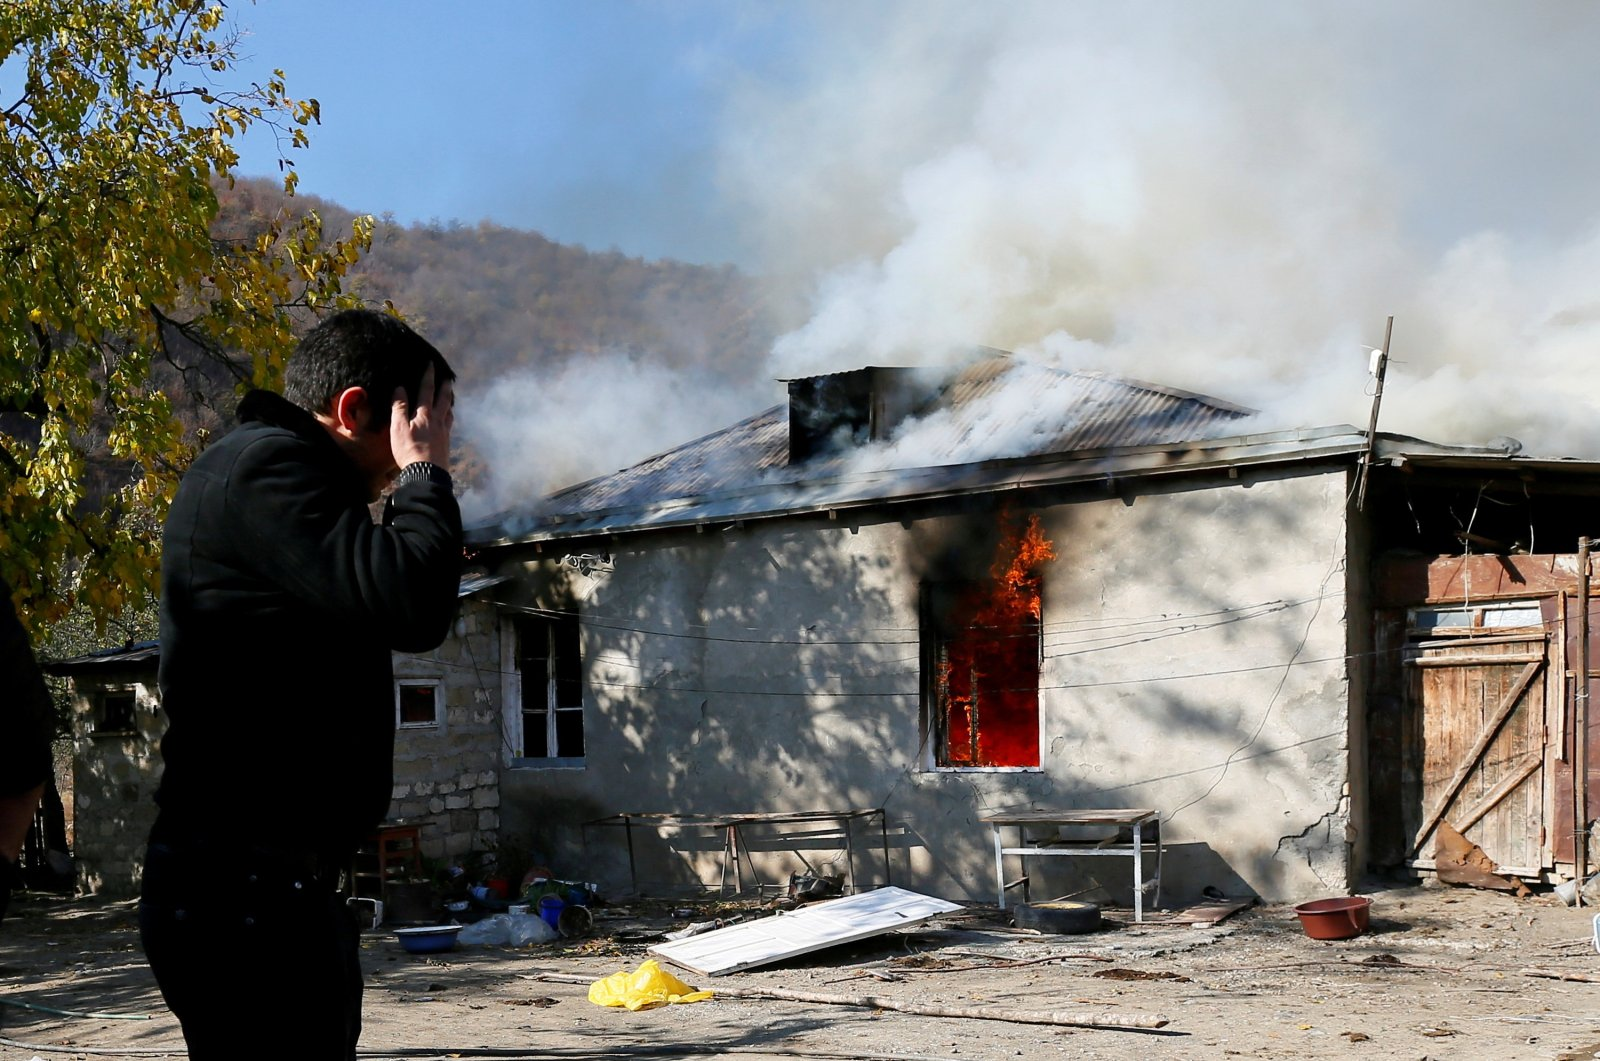 A man reacts as he stands near a house set on fire by departing ethnic Armenians, in an area that had held under their military control but is soon to be turned over to Azerbaijan, in the village of Cherektar in the region of Nagorno-Karabakh, Nov. 14, 2020. (REUTERS)